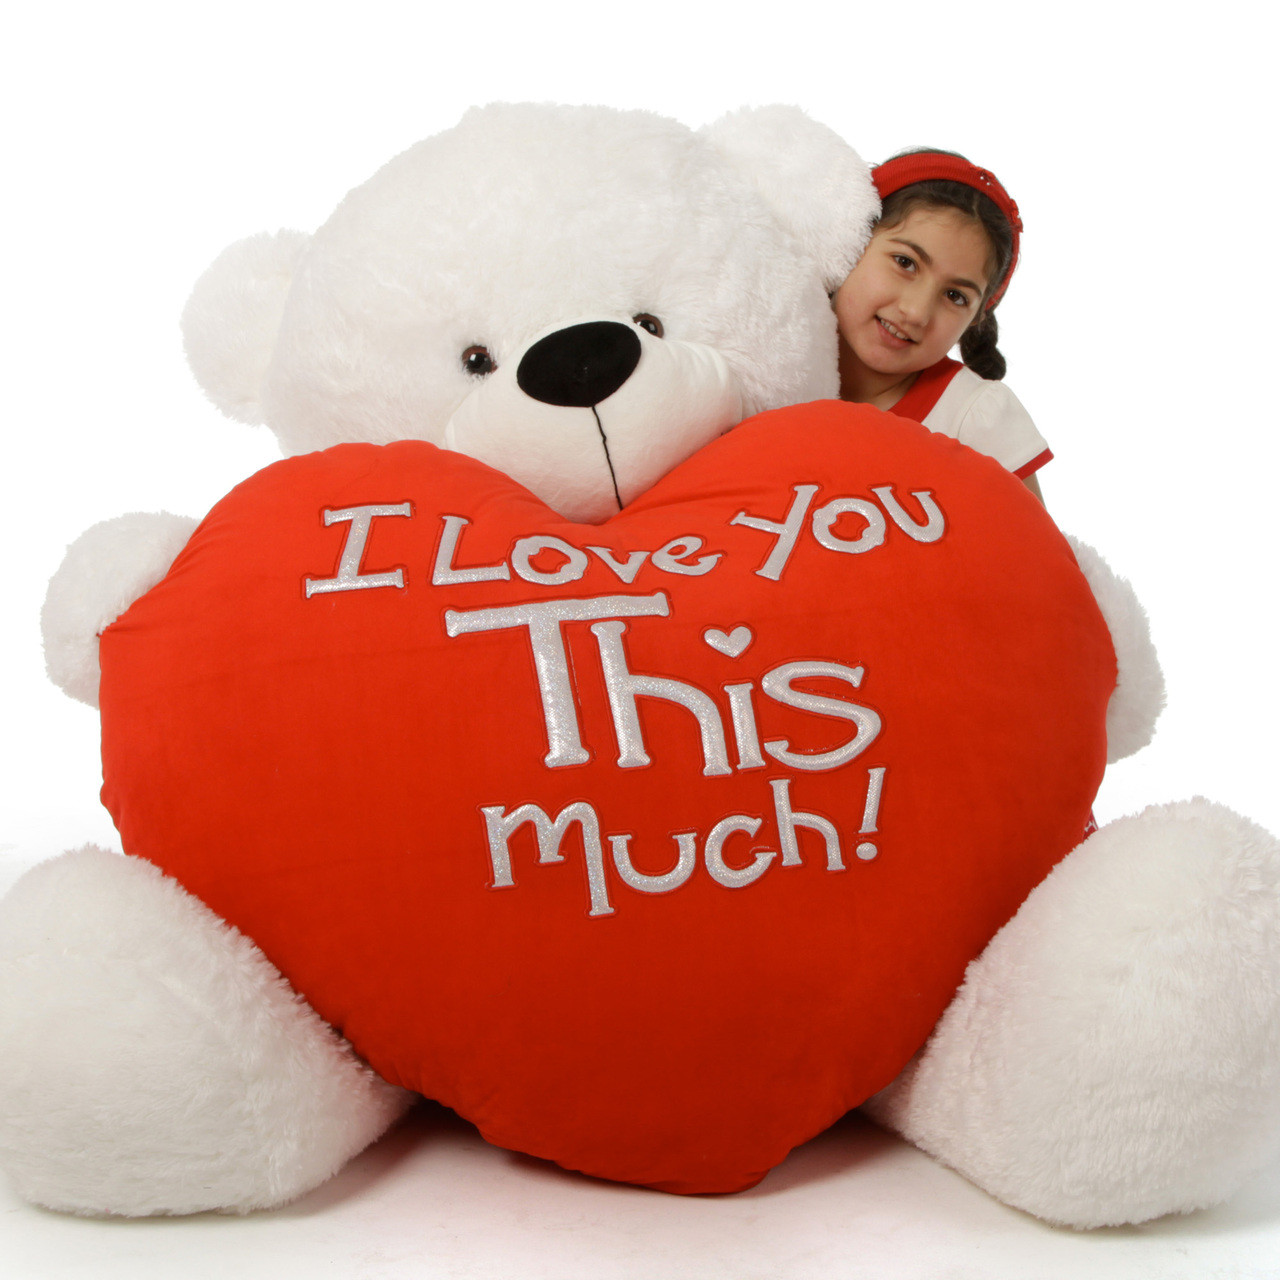 Giant white valentines day teddy bear coco cuddles 60in i love you coco cuddles is ready for romance with red i love you this much voltagebd Gallery